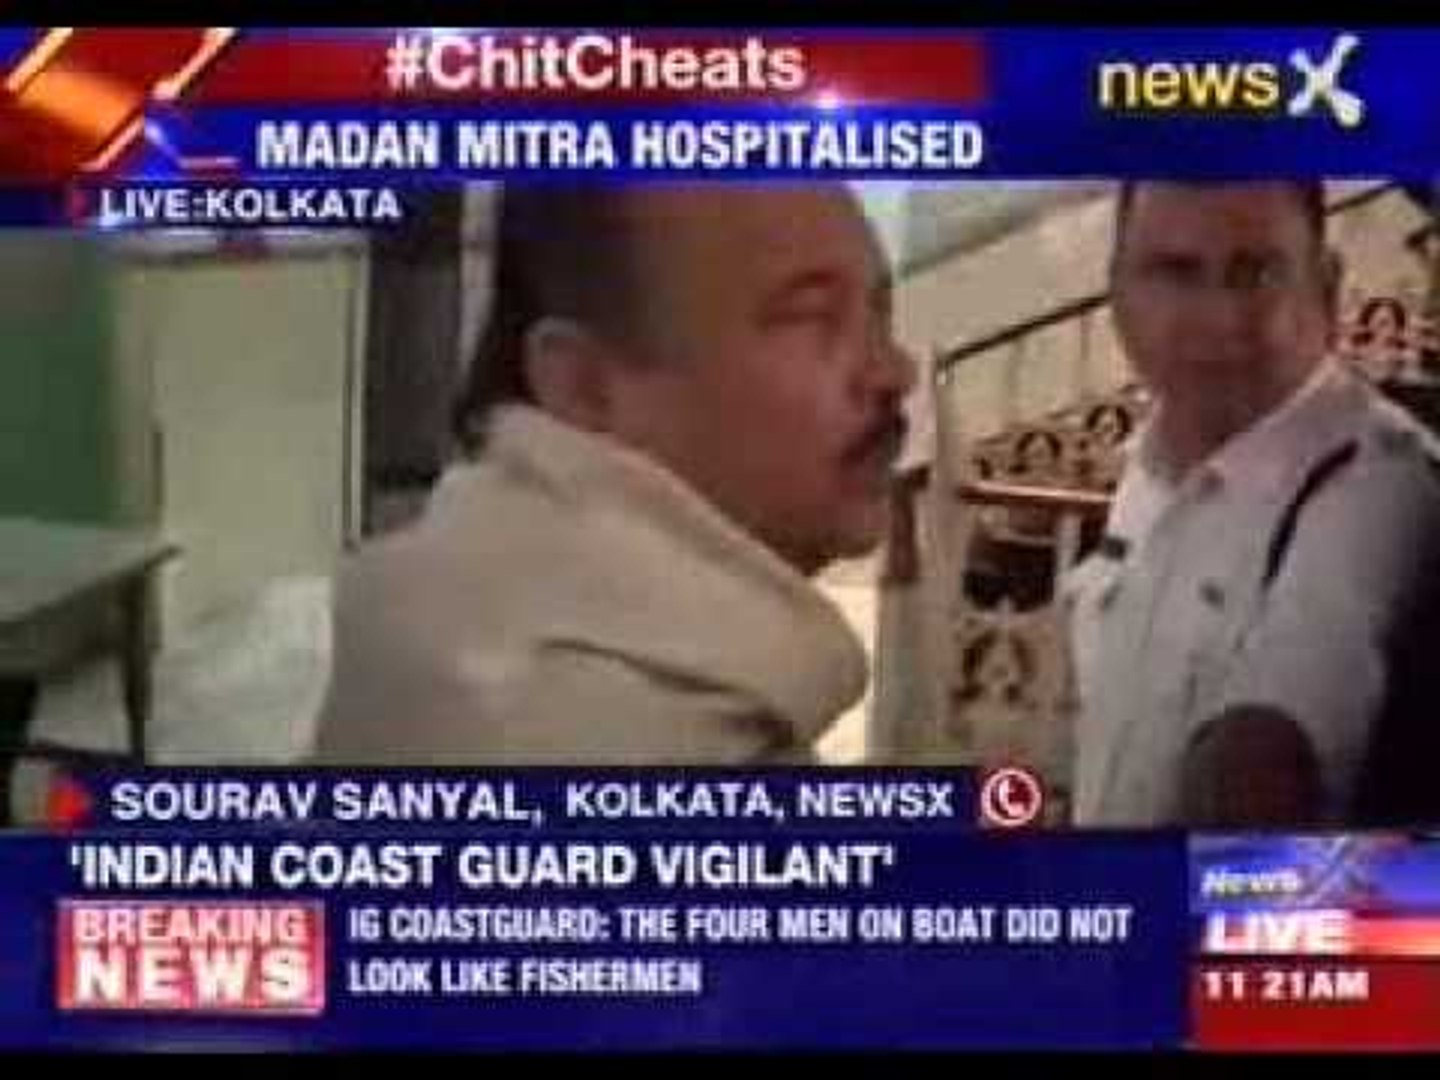 West Bengal minister Madan Mitra taken to hospital